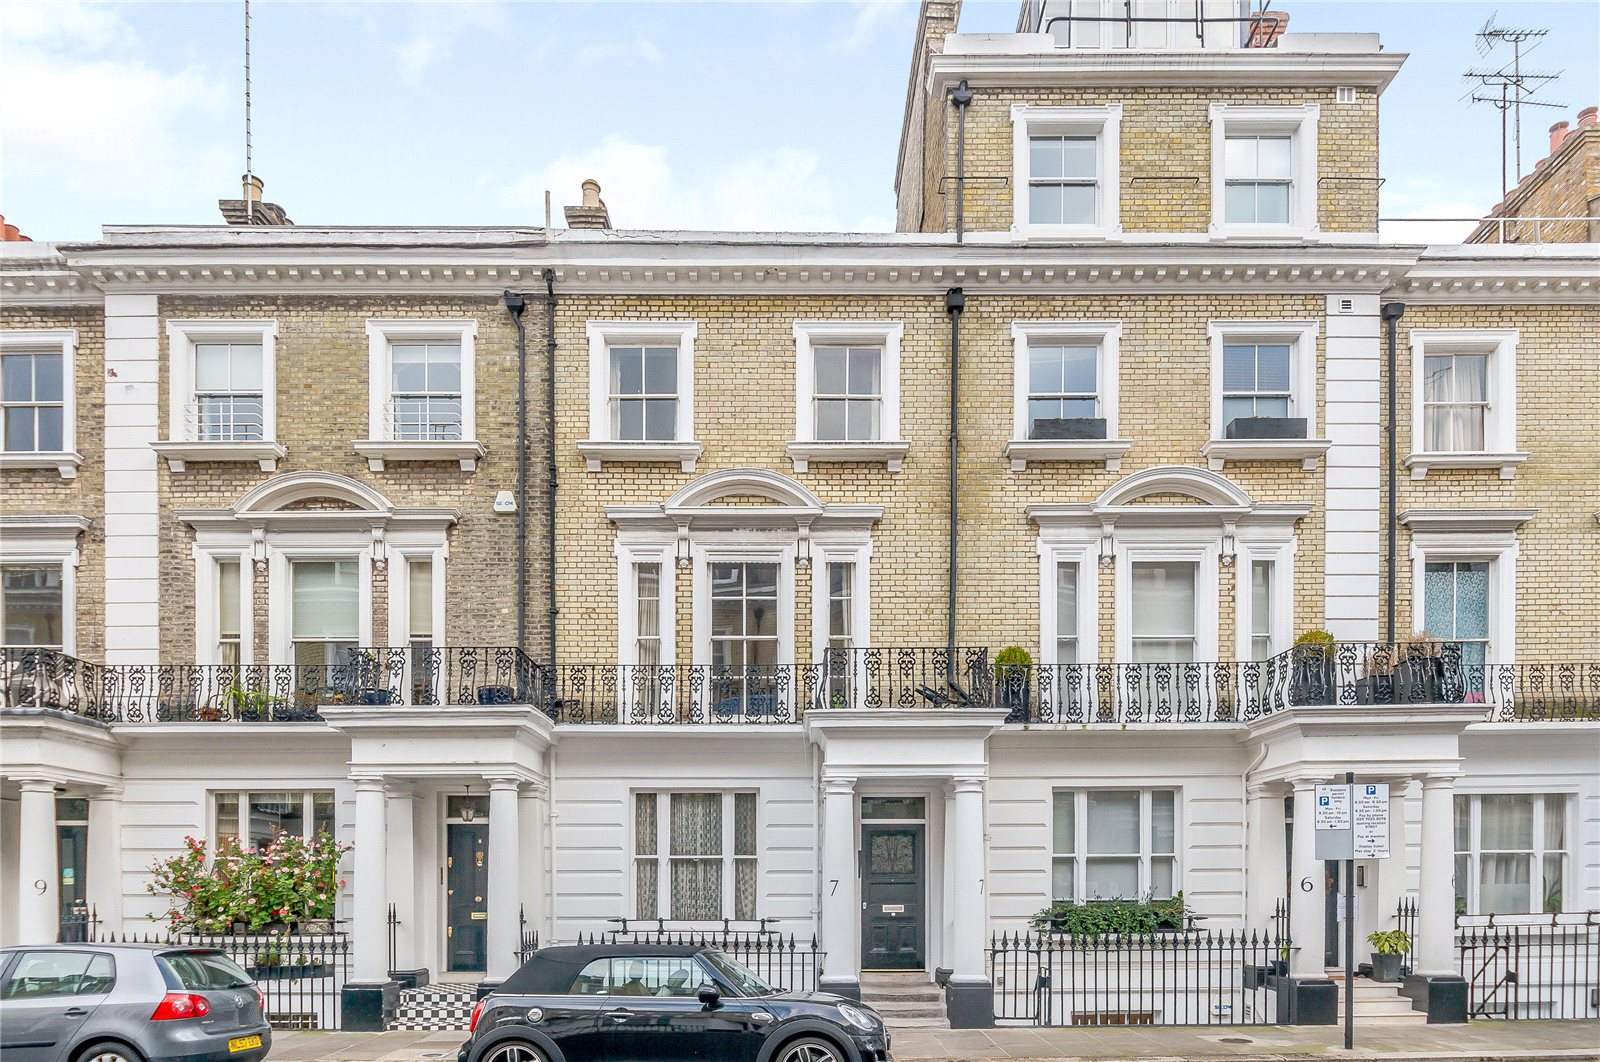 Single Family Home for Sale at Neville Street, London, SW7 London, England